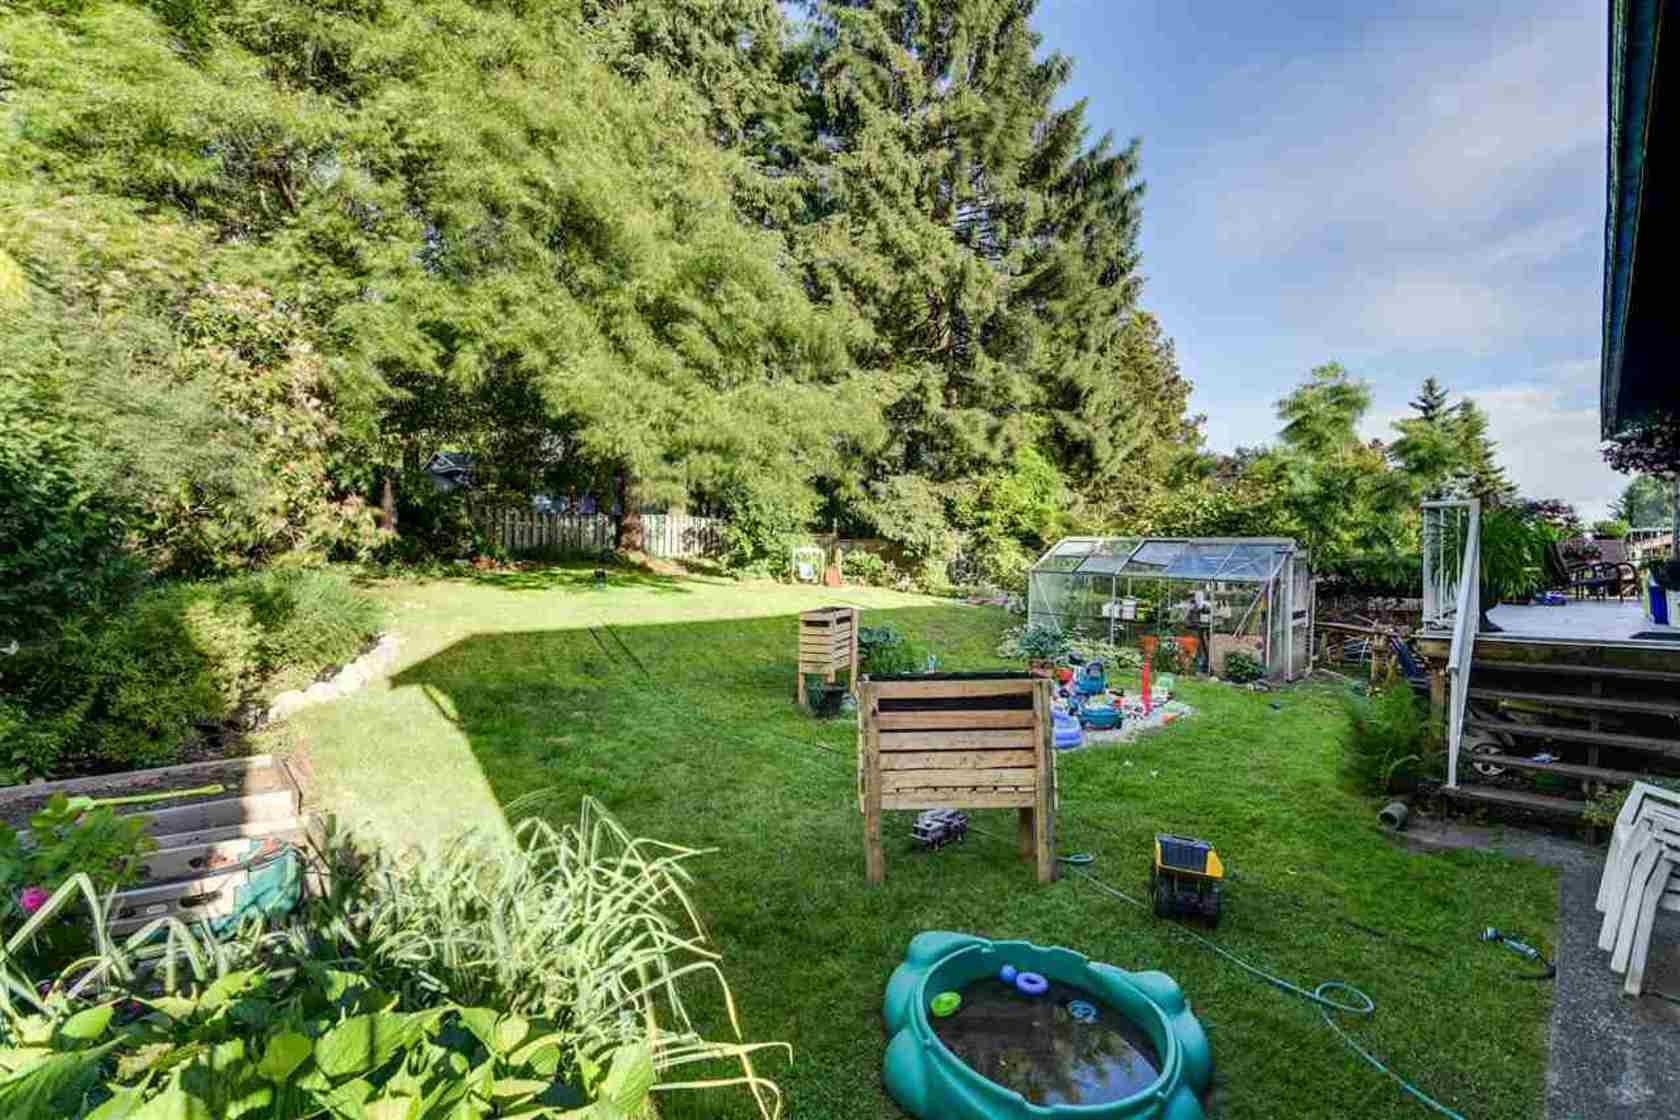 157-montgomery-street-cape-horn-coquitlam-17 at 157 Montgomery Street, Cape Horn, Coquitlam